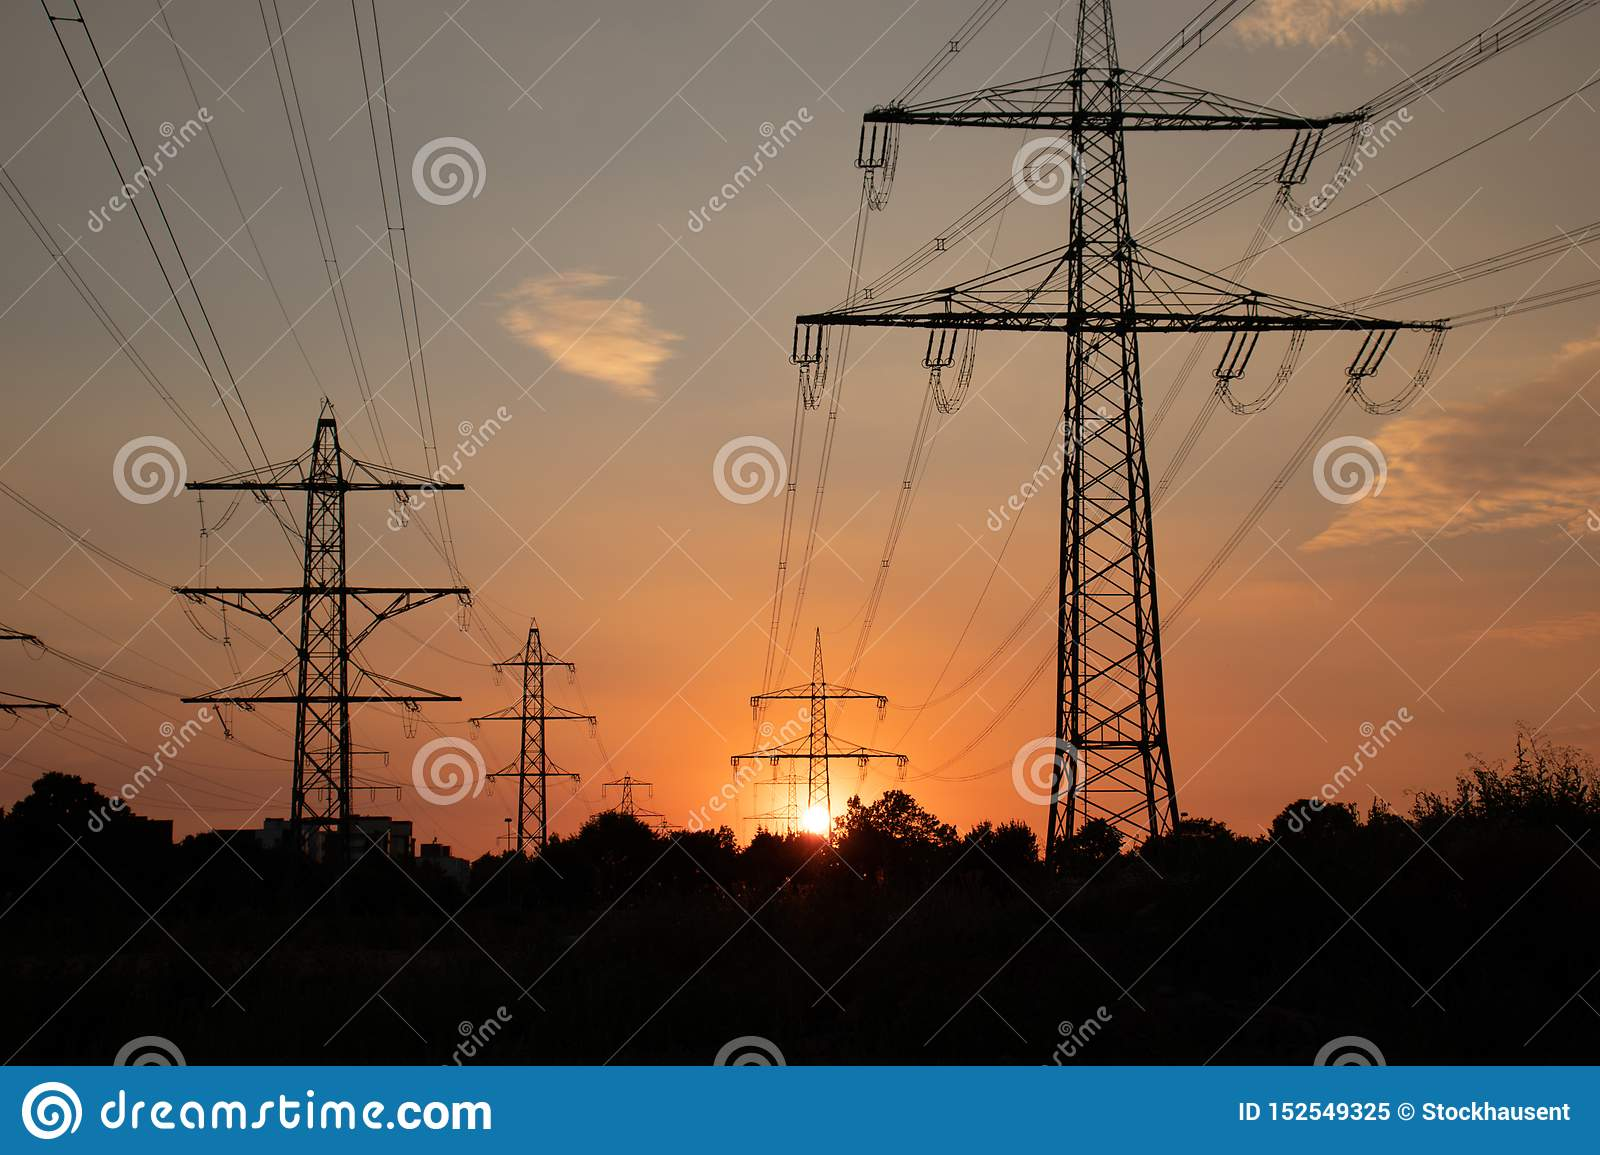 High voltage line, energy for people, at sunset